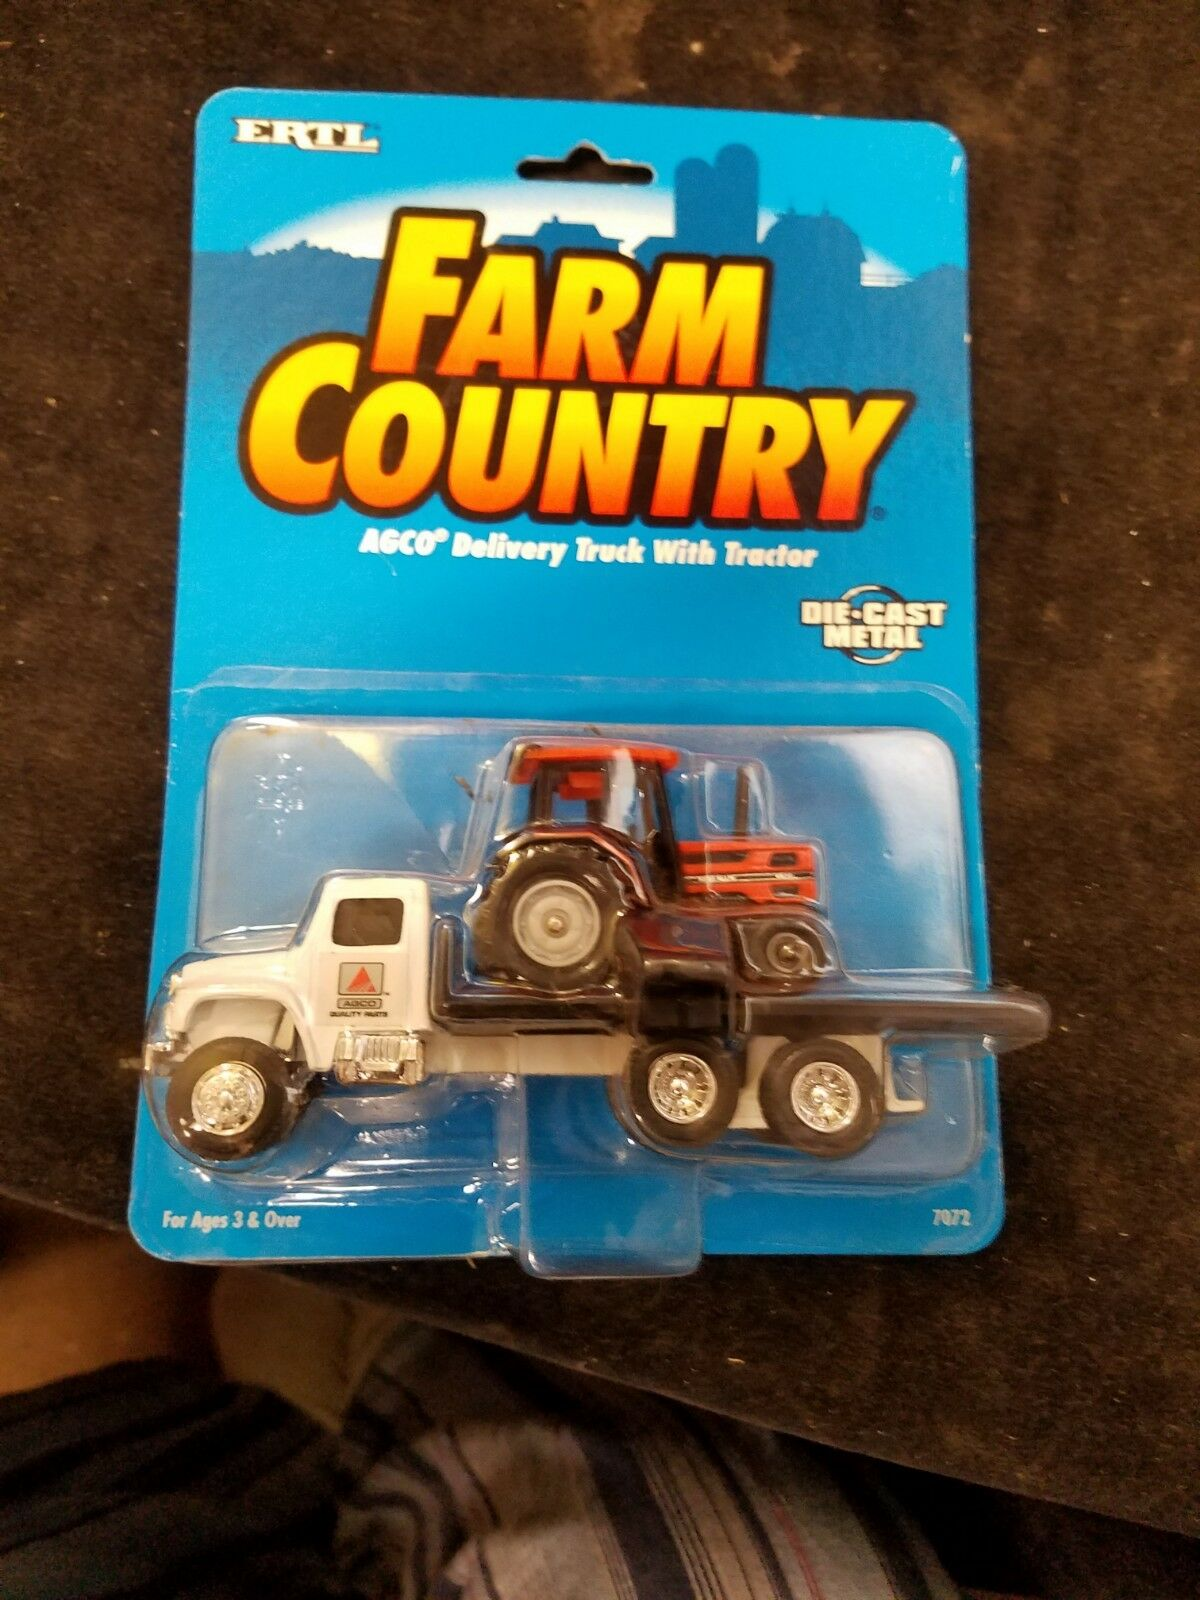 1995 Ertl Farm Country 7072 AGCO Diecast Delivery Truck With Tractor New